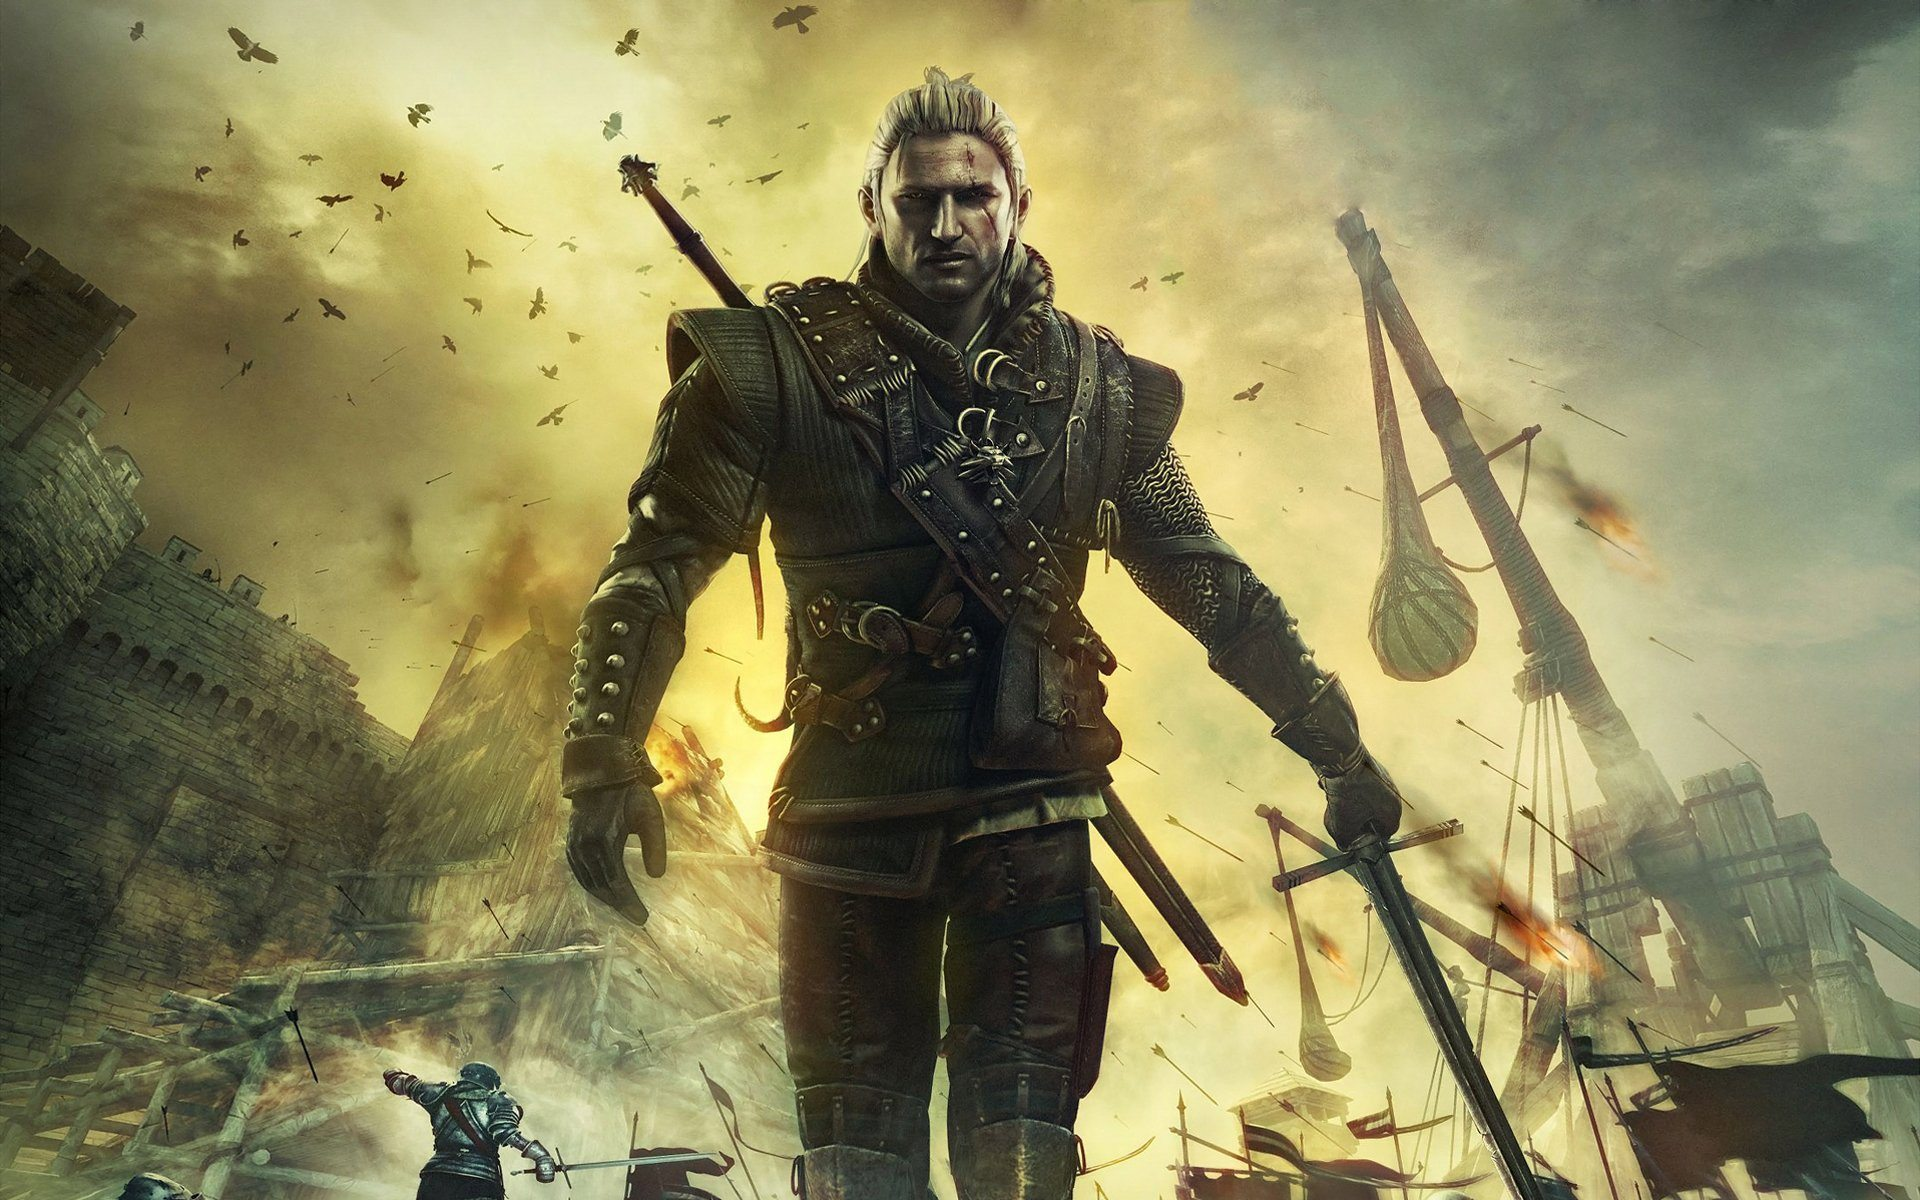 Mac Wallpapers The Witcher 2 Mac Games Wallpapers Assassins of Kings